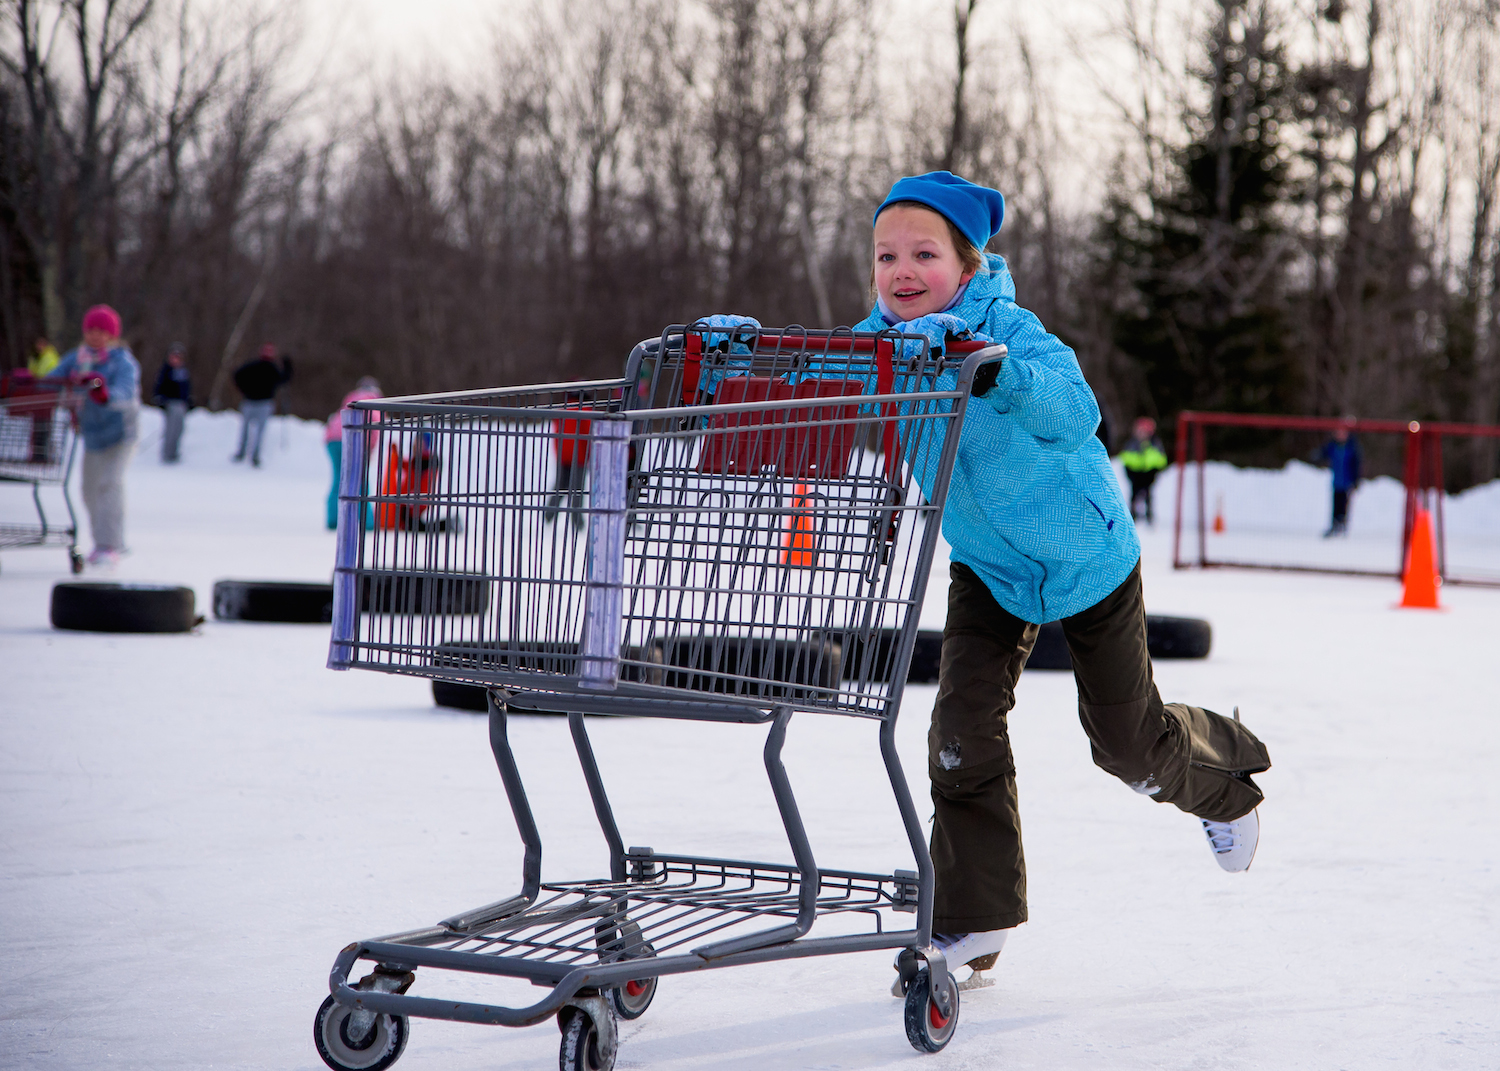 Madelyn Lindsay, 10, of Scarborough pushes a shopping cart through the Obstacle Course.